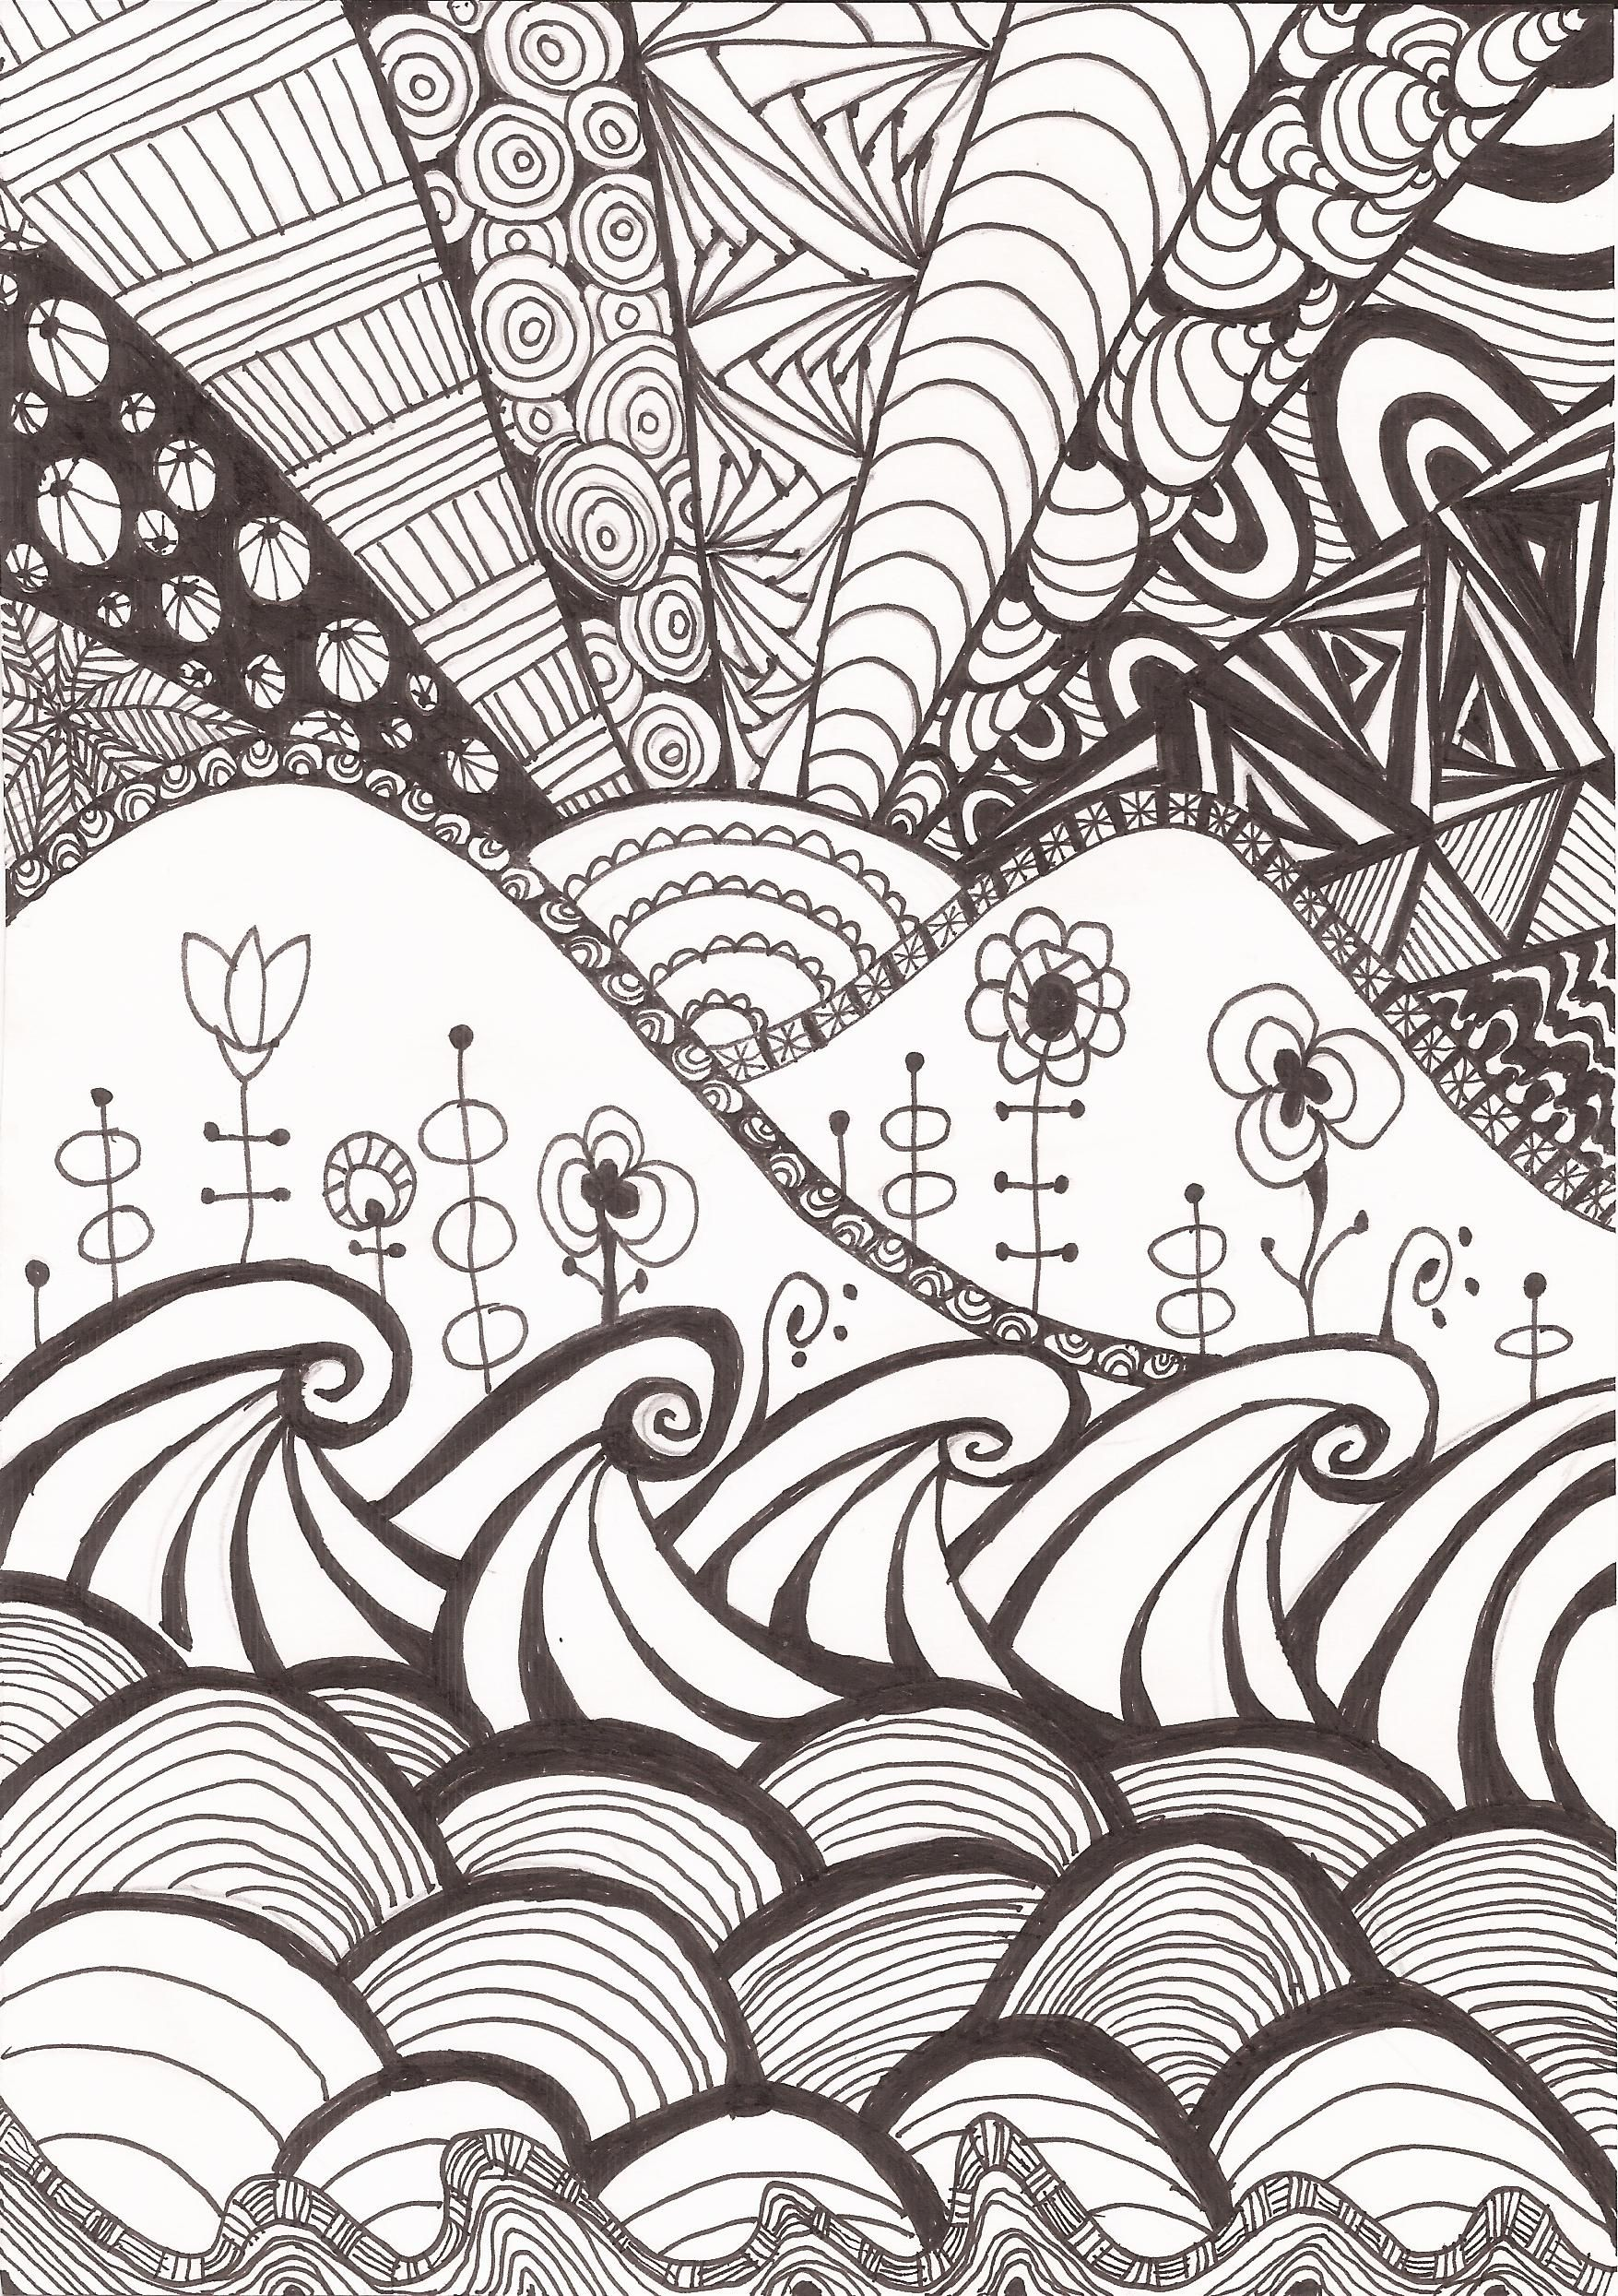 Zen doodle colour - Doodle Art Bynina Feel Free For Colour And Share